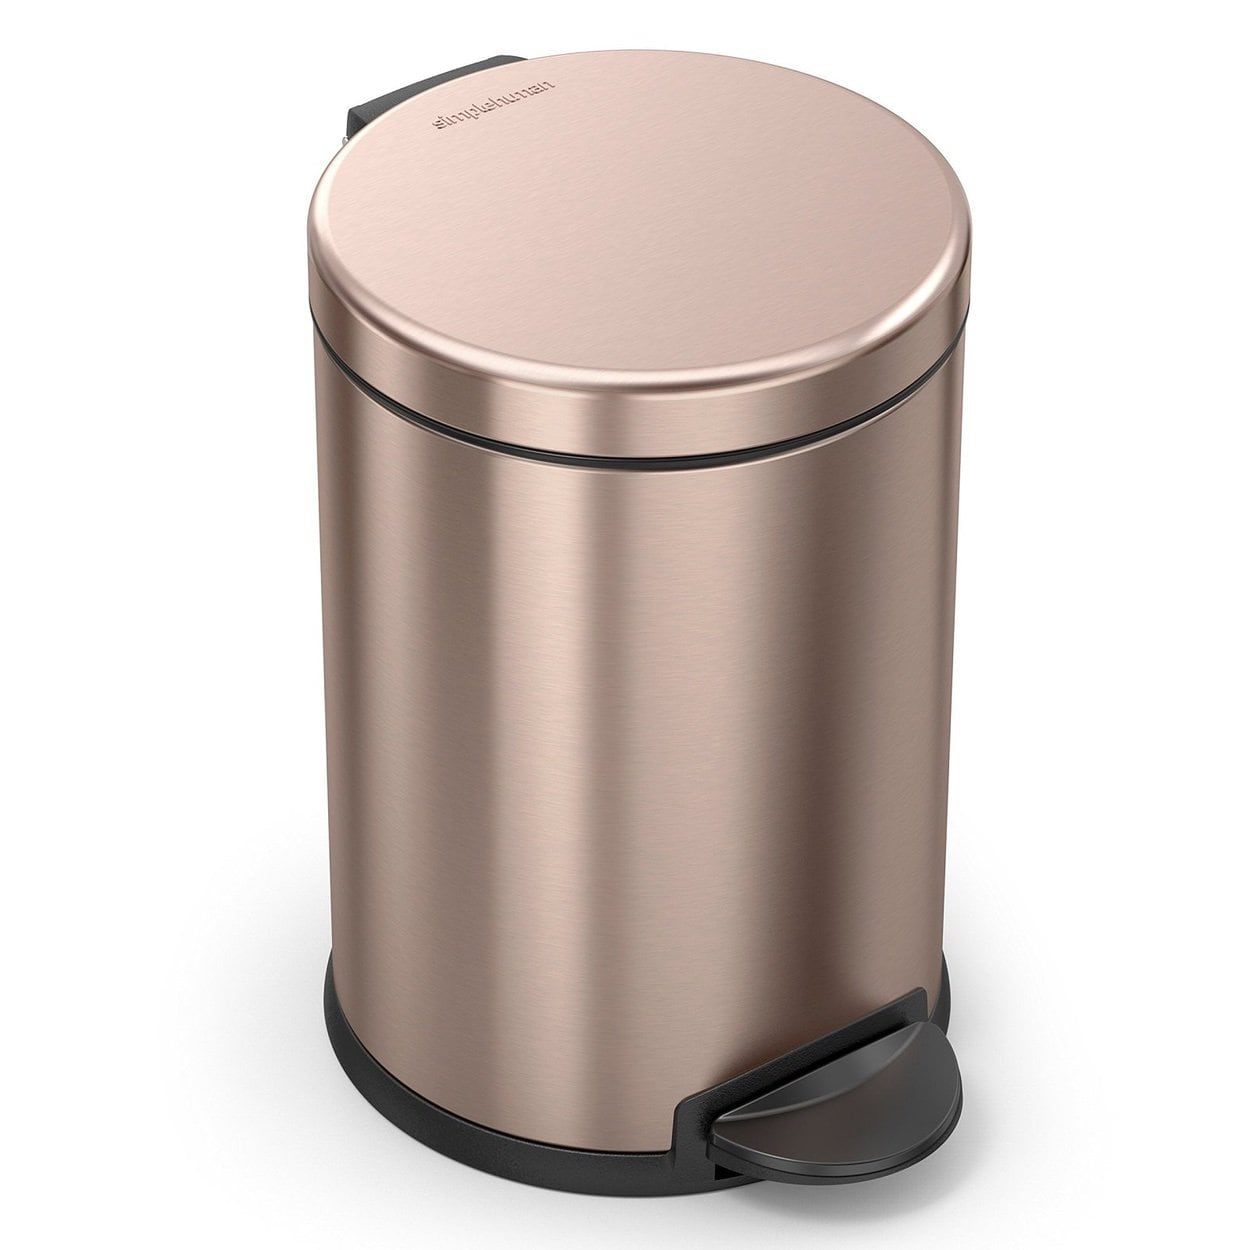 Simplehuman Round Rose Gold Step Can - 4.5L